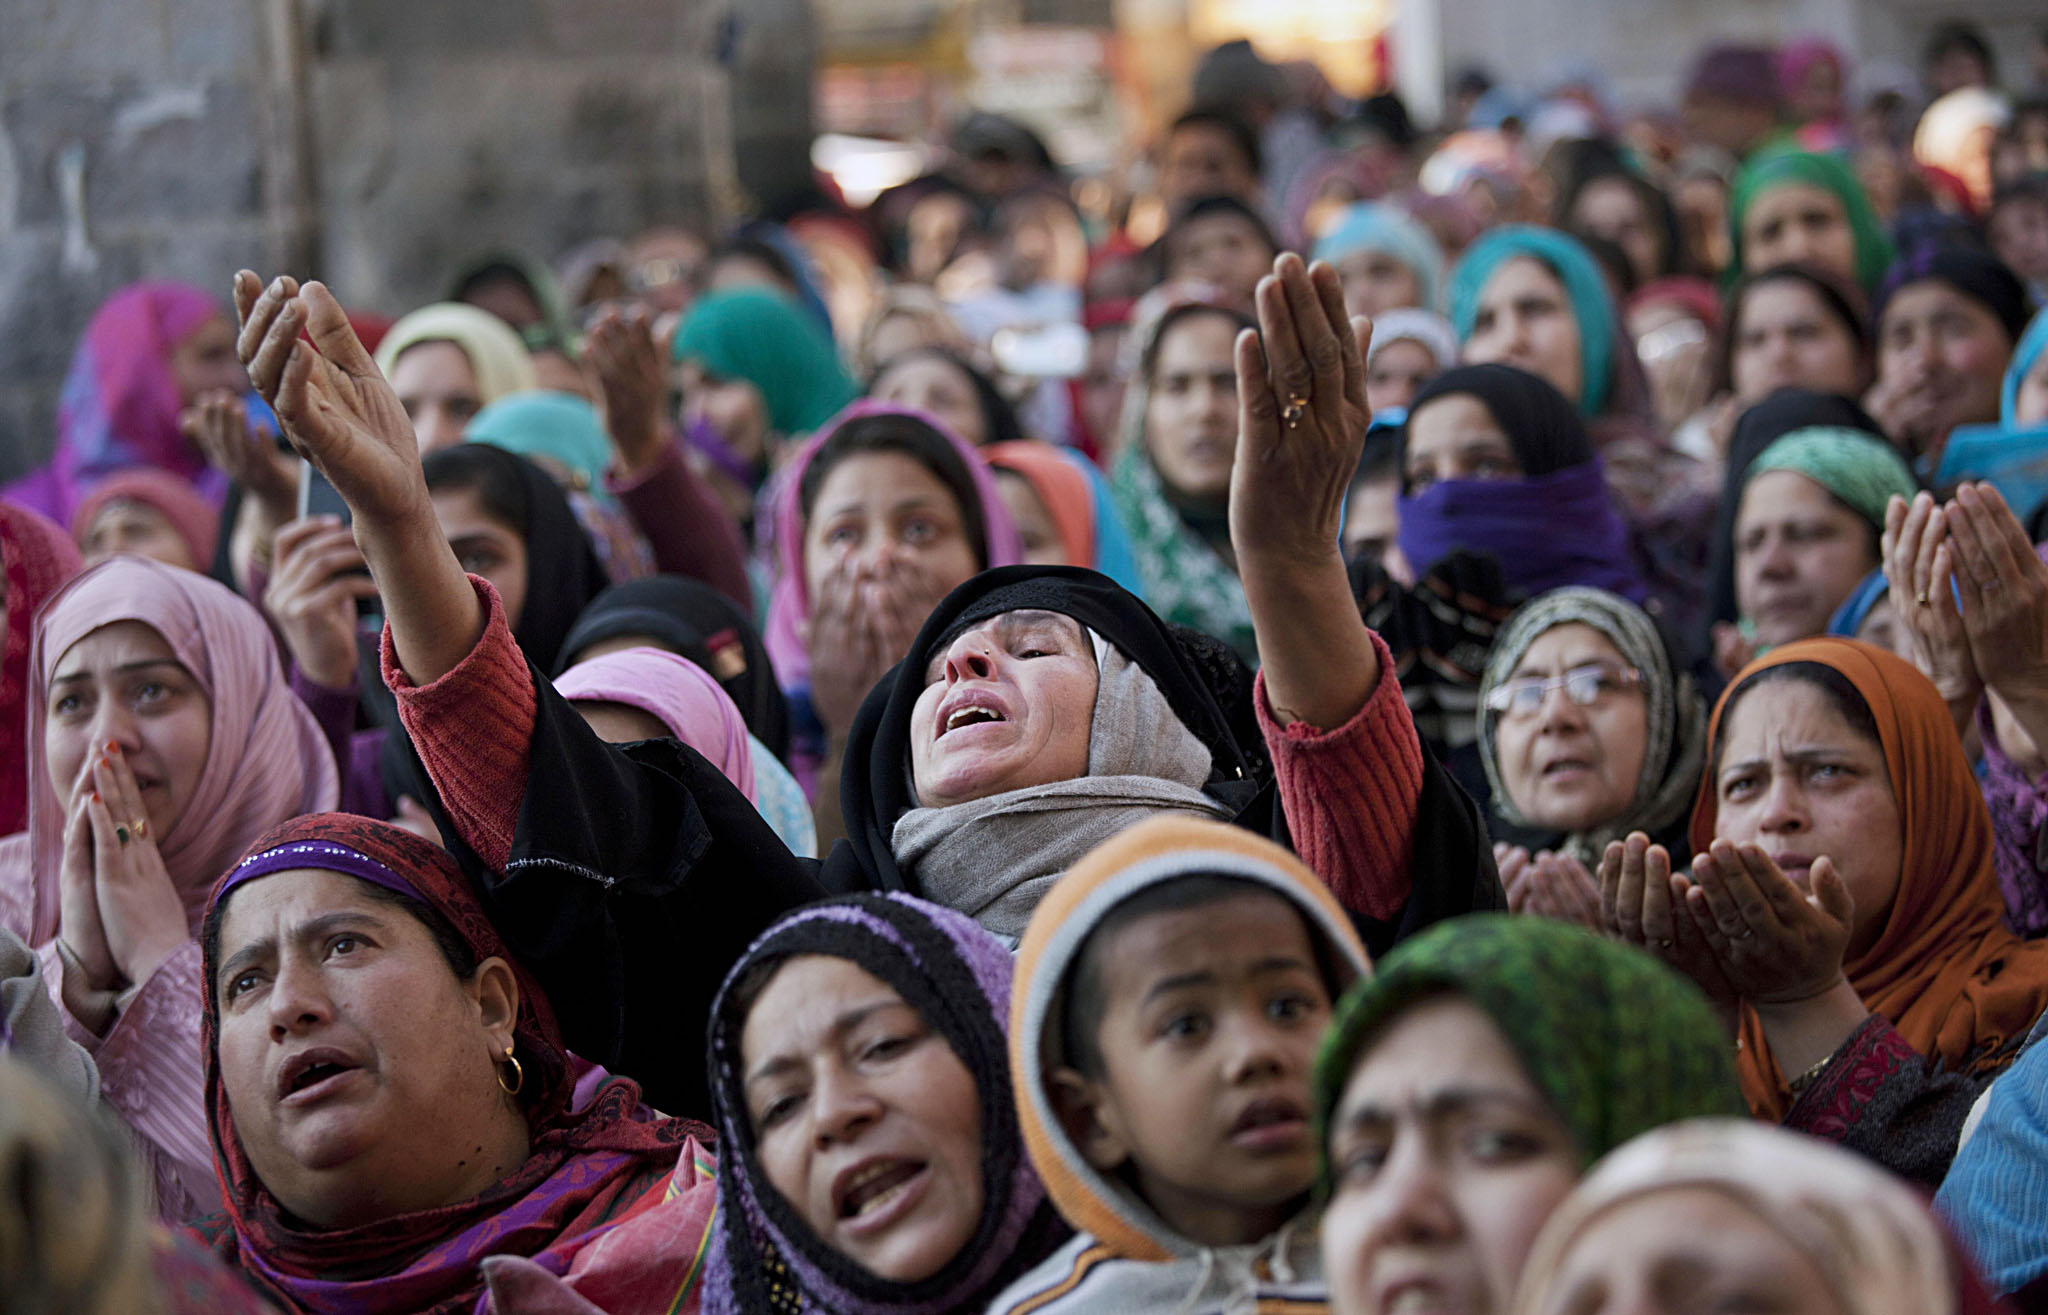 Kashmiri Muslim devotees pray as the head priest displays a relic of Syed Abdul Qadir Jilani outside his shrine in Srinagar, India, Thursday, Feb. 13, 2014. Hundreds of devotees thronged the shrine which houses the relic of the saint to mark the saint's Urs, or yearly commemoration. (AP Photo/ Dar Yasin)